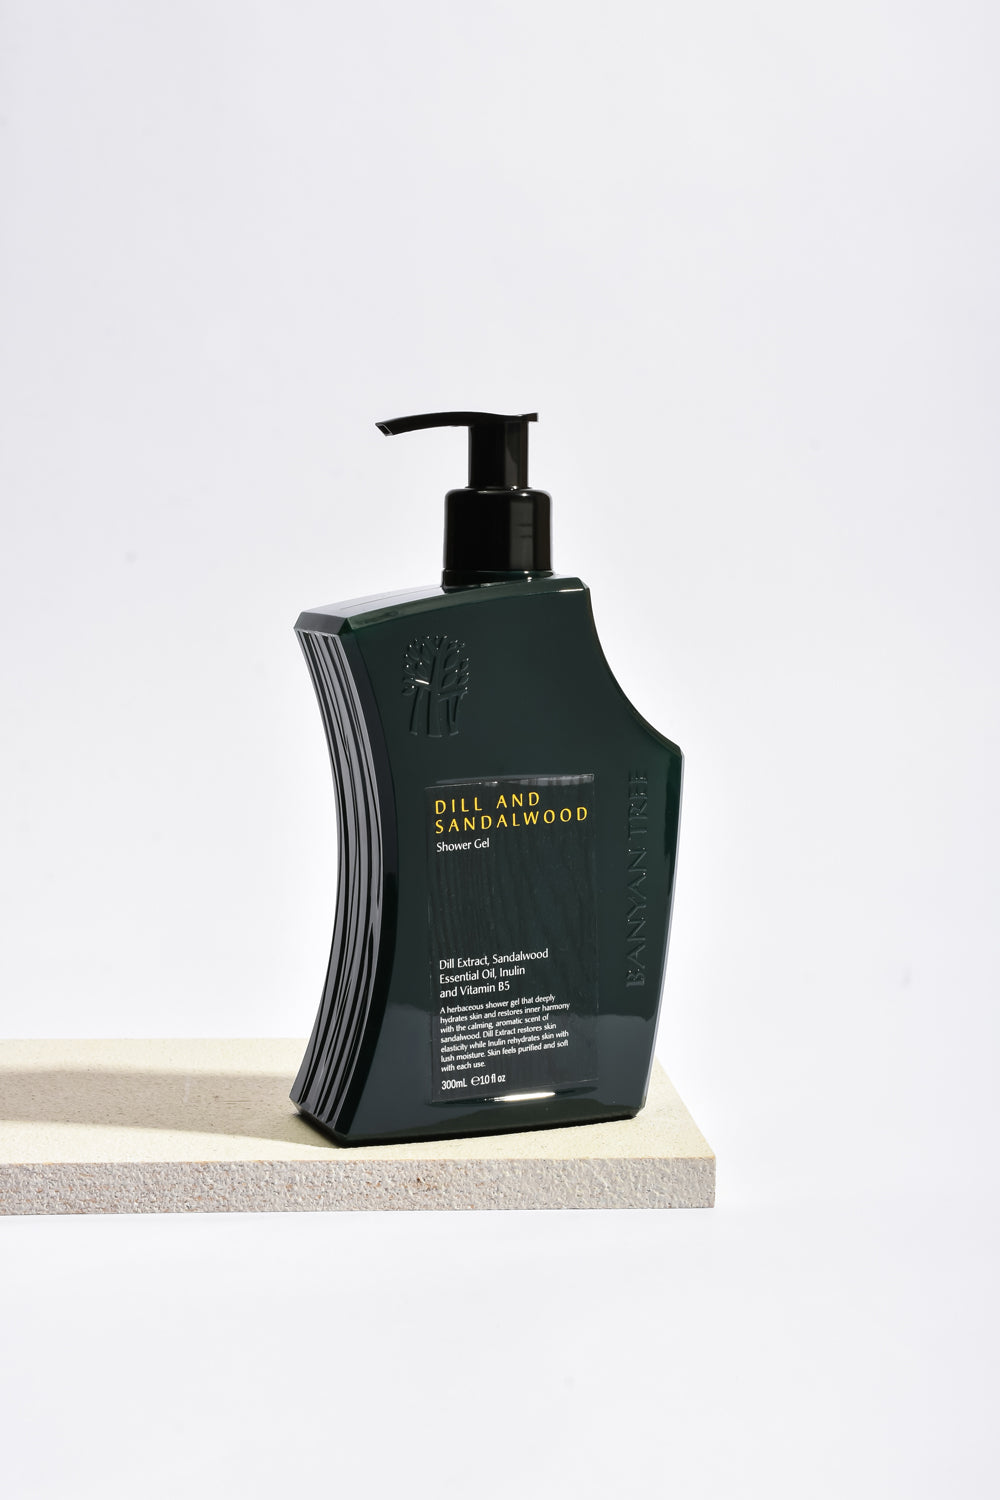 Dill and Sandalwood Shower Gel - Banyan Tree Gallery